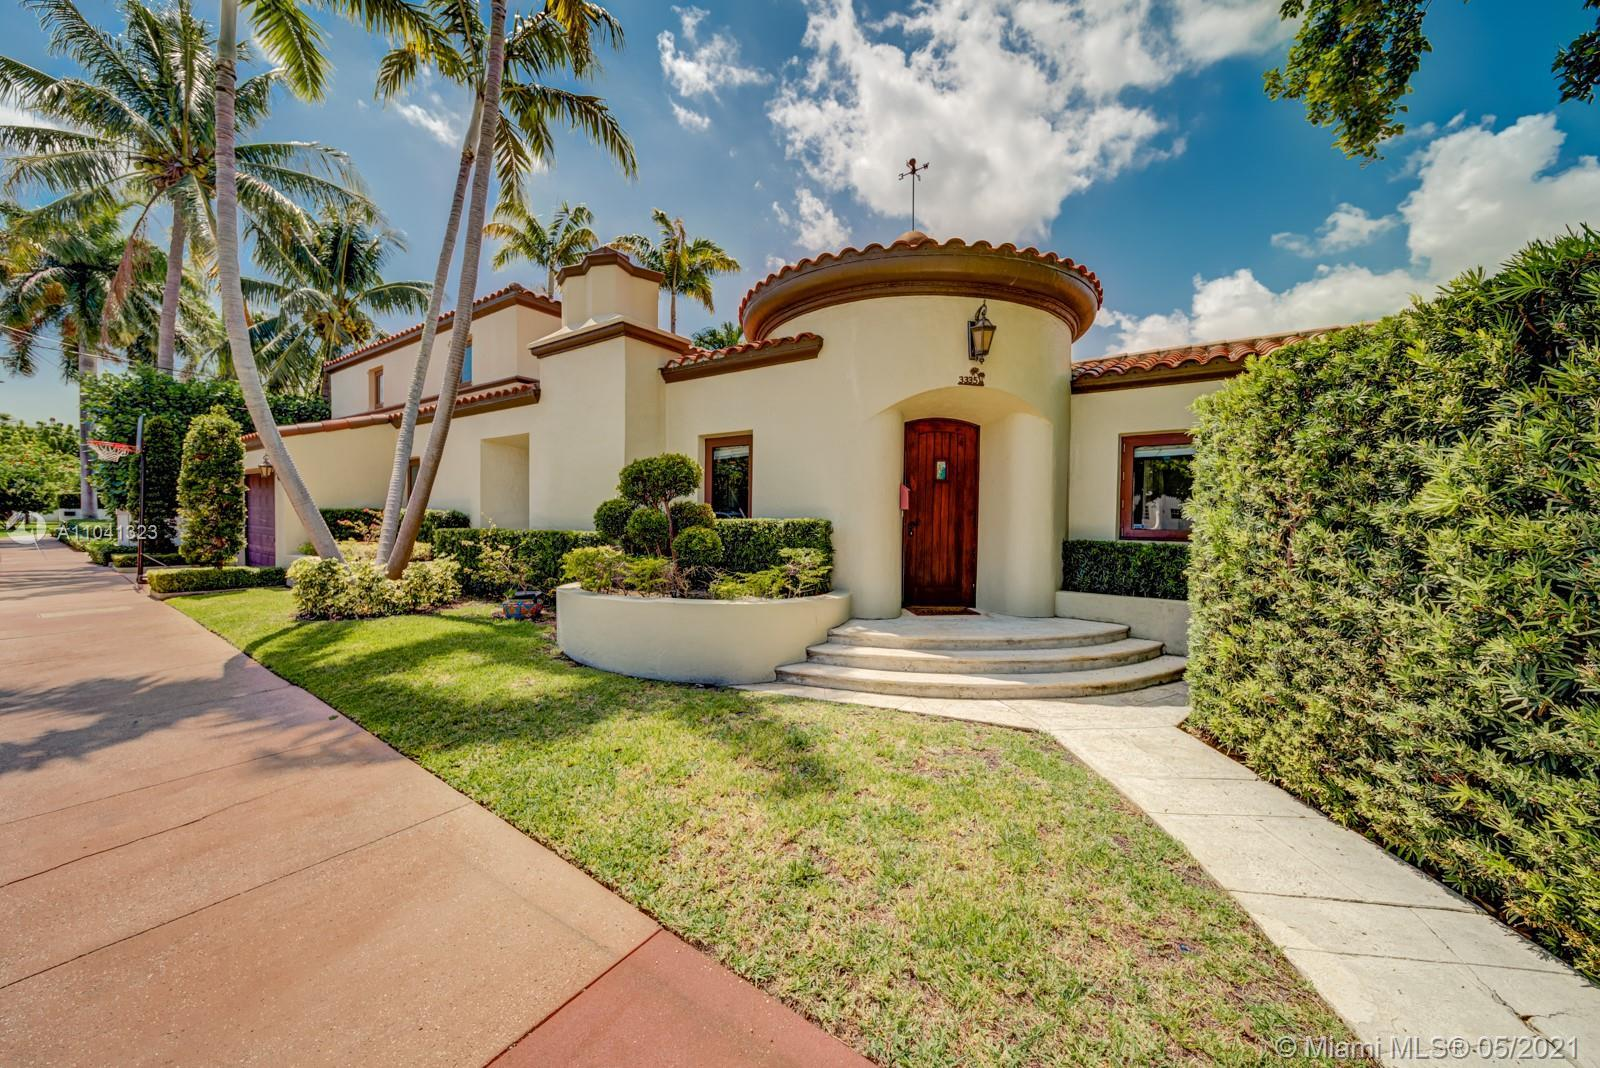 Fully remodeled Art Deco gem designed by famed Architect L. Murray Dixon. The perfect combination of